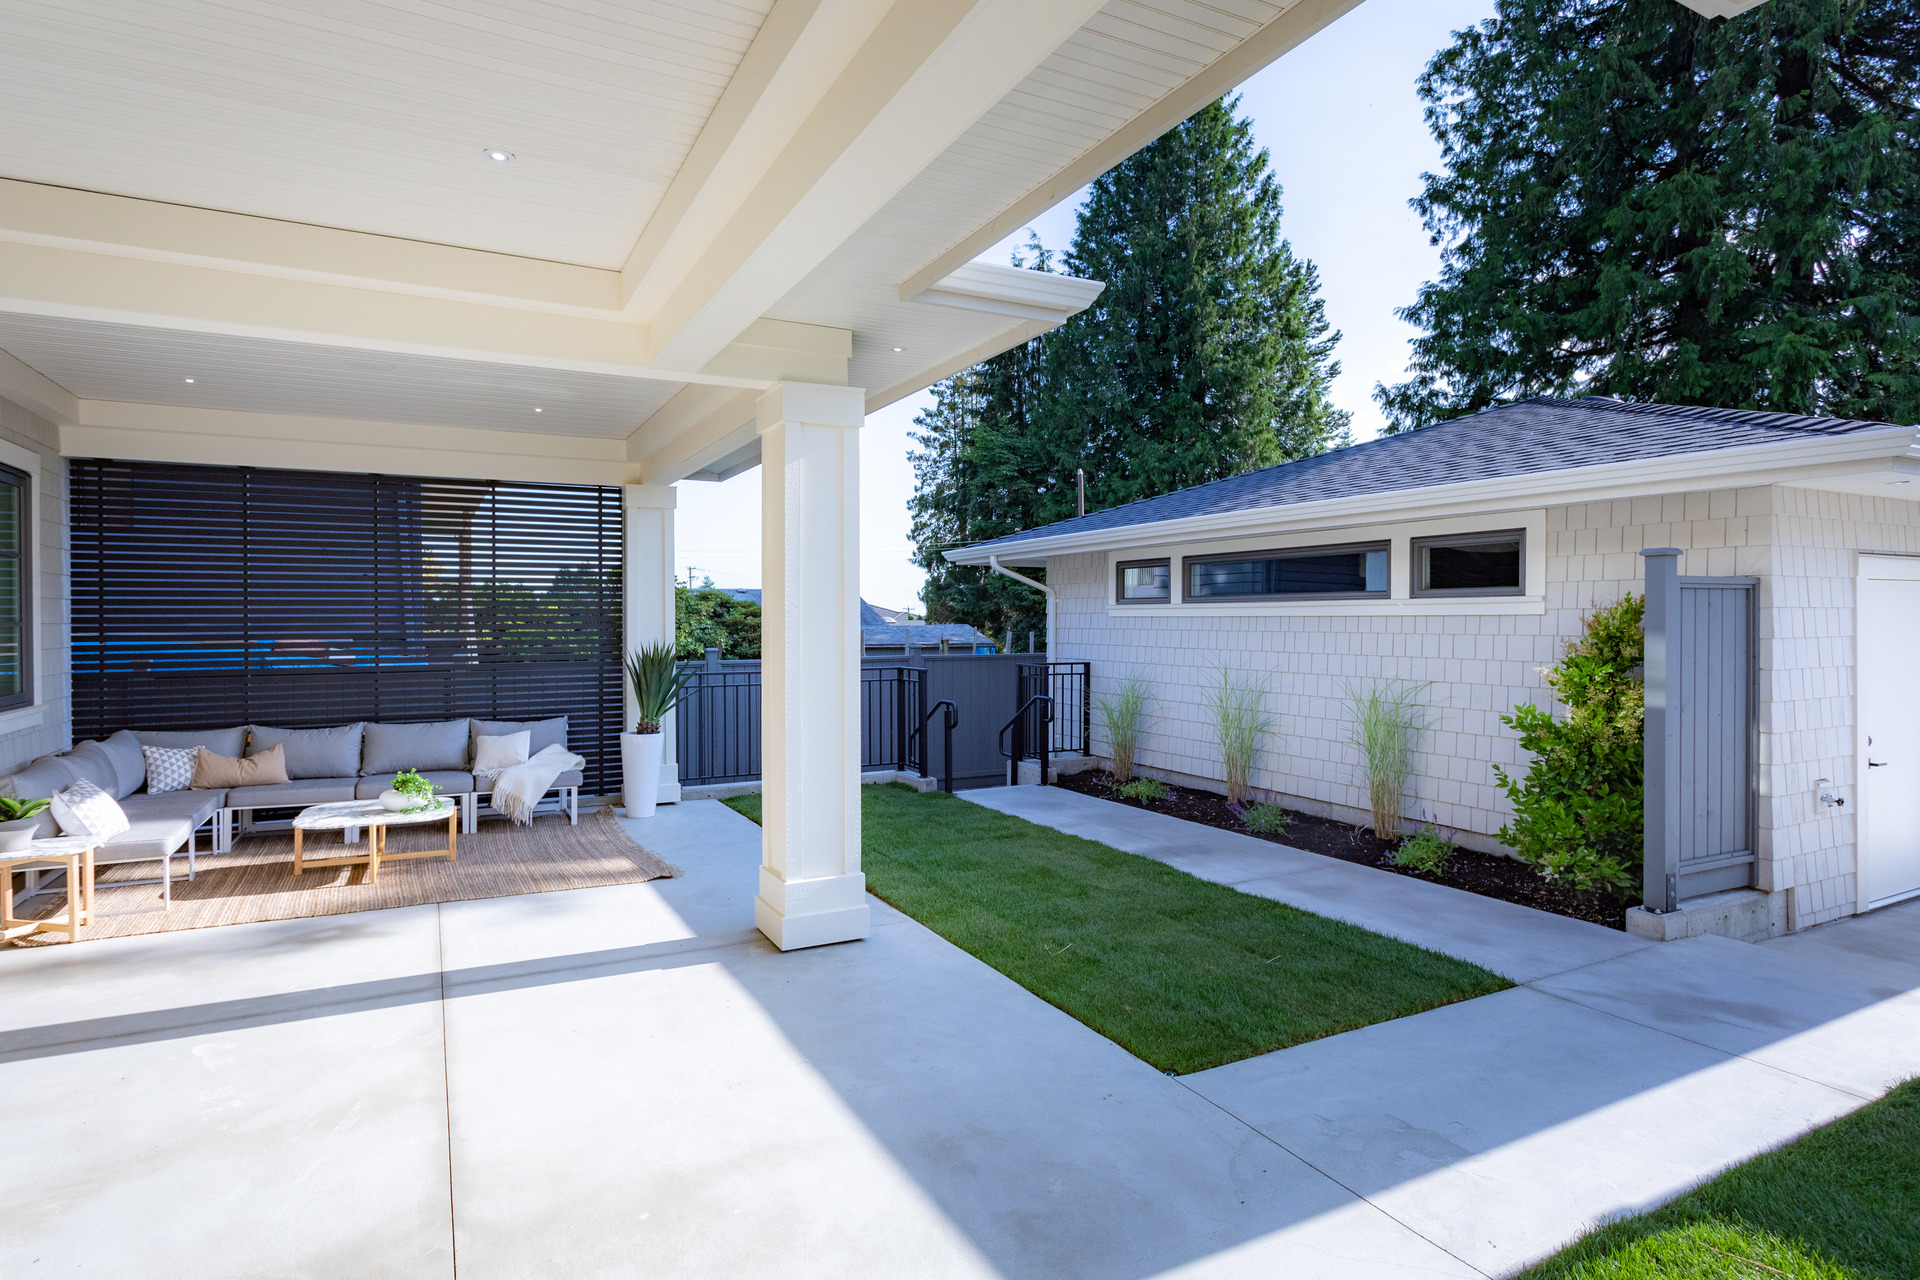 jh26 at 558 Berry Street, Central Coquitlam, Coquitlam